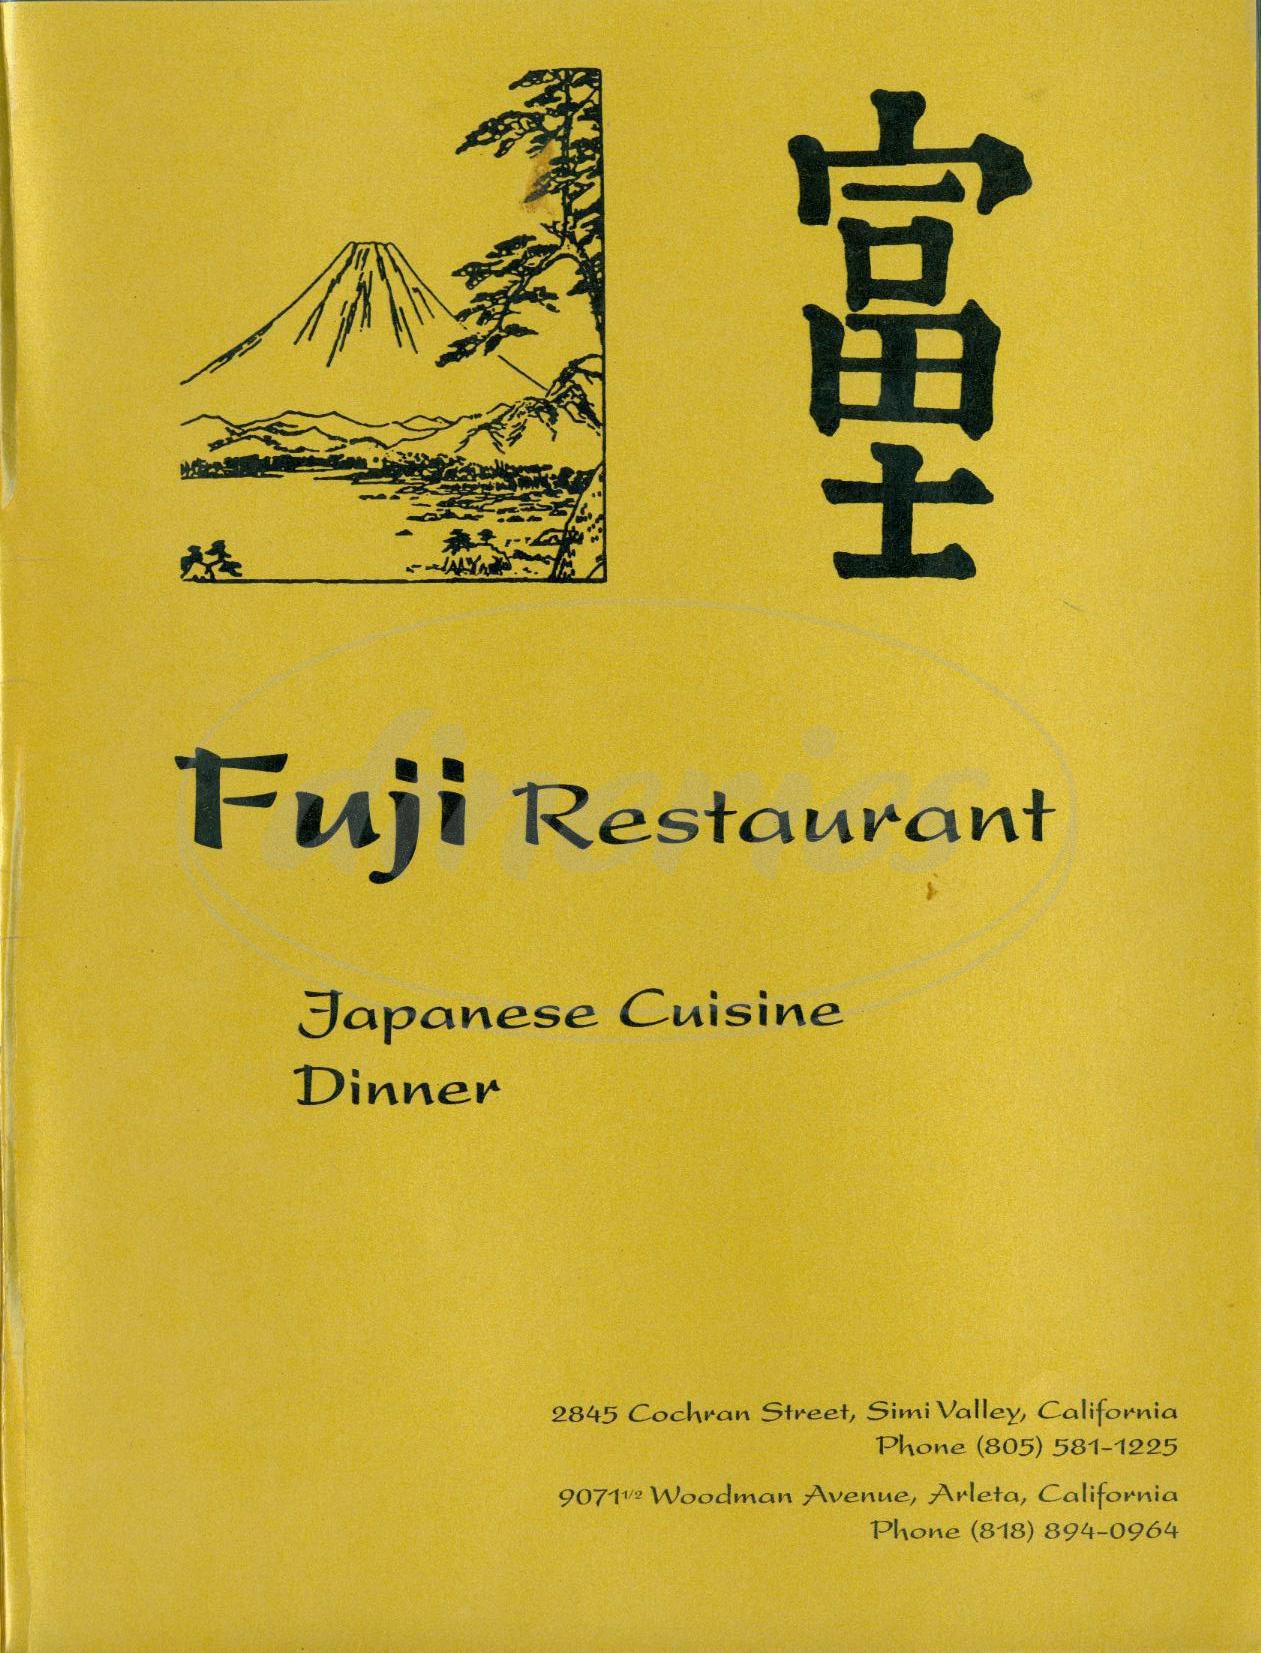 menu for Fuji Restaurant